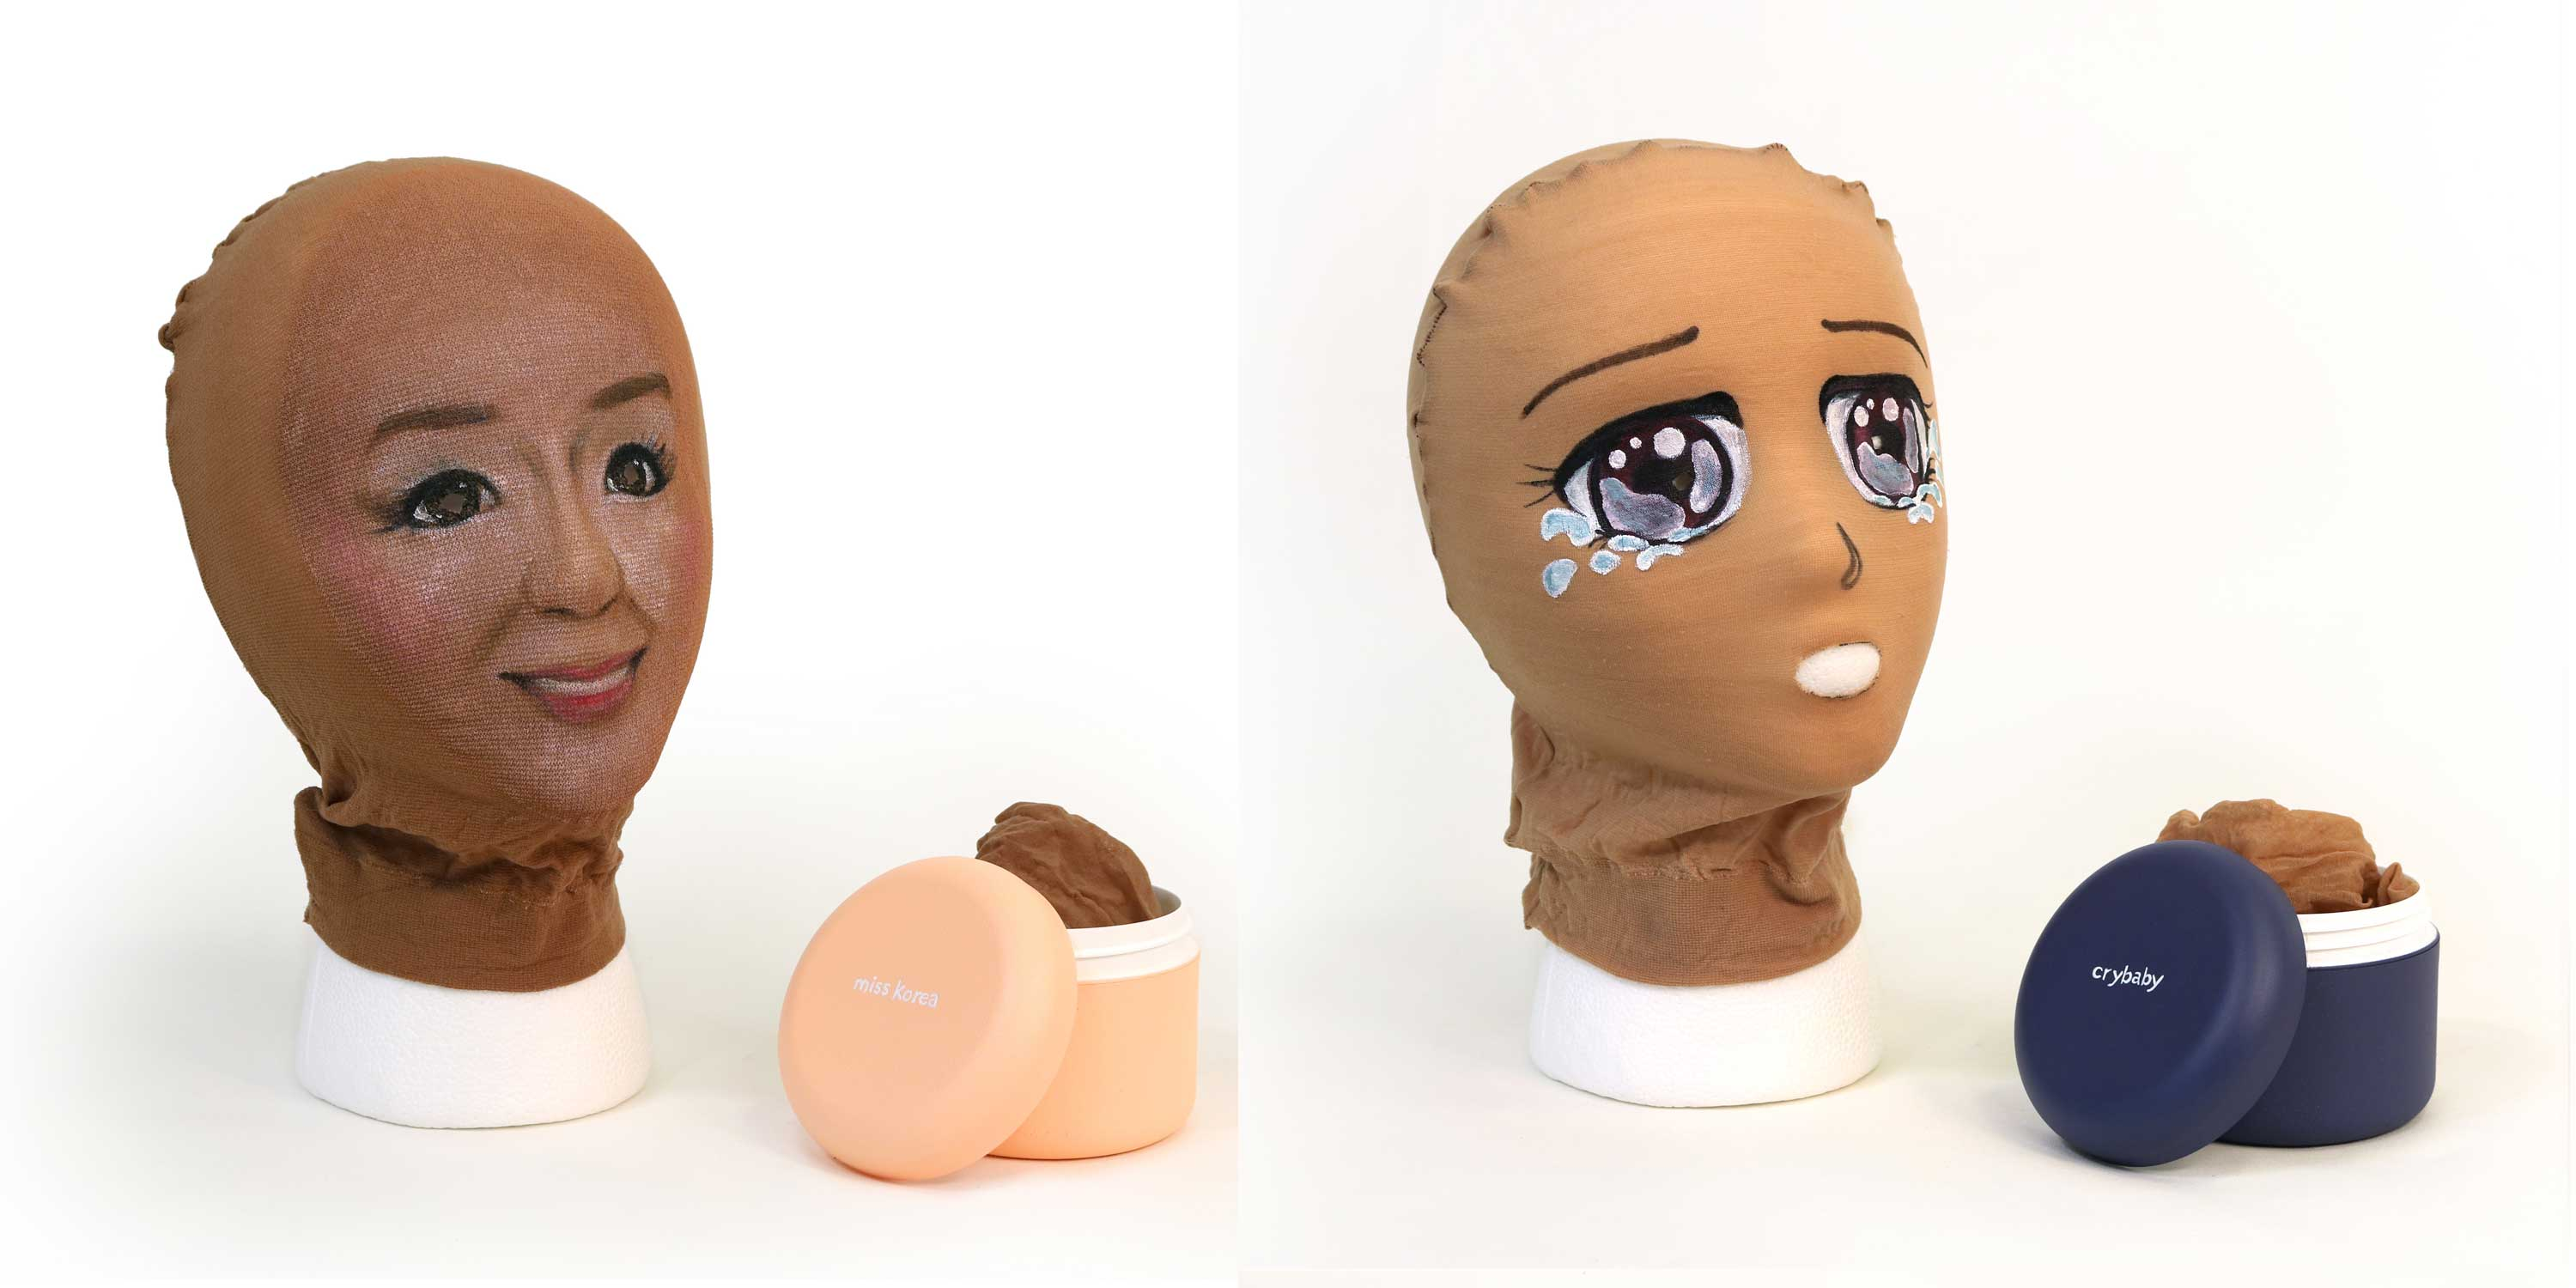 Unsettling Anime Masks Exorcise This Artist S Insecurities Vice